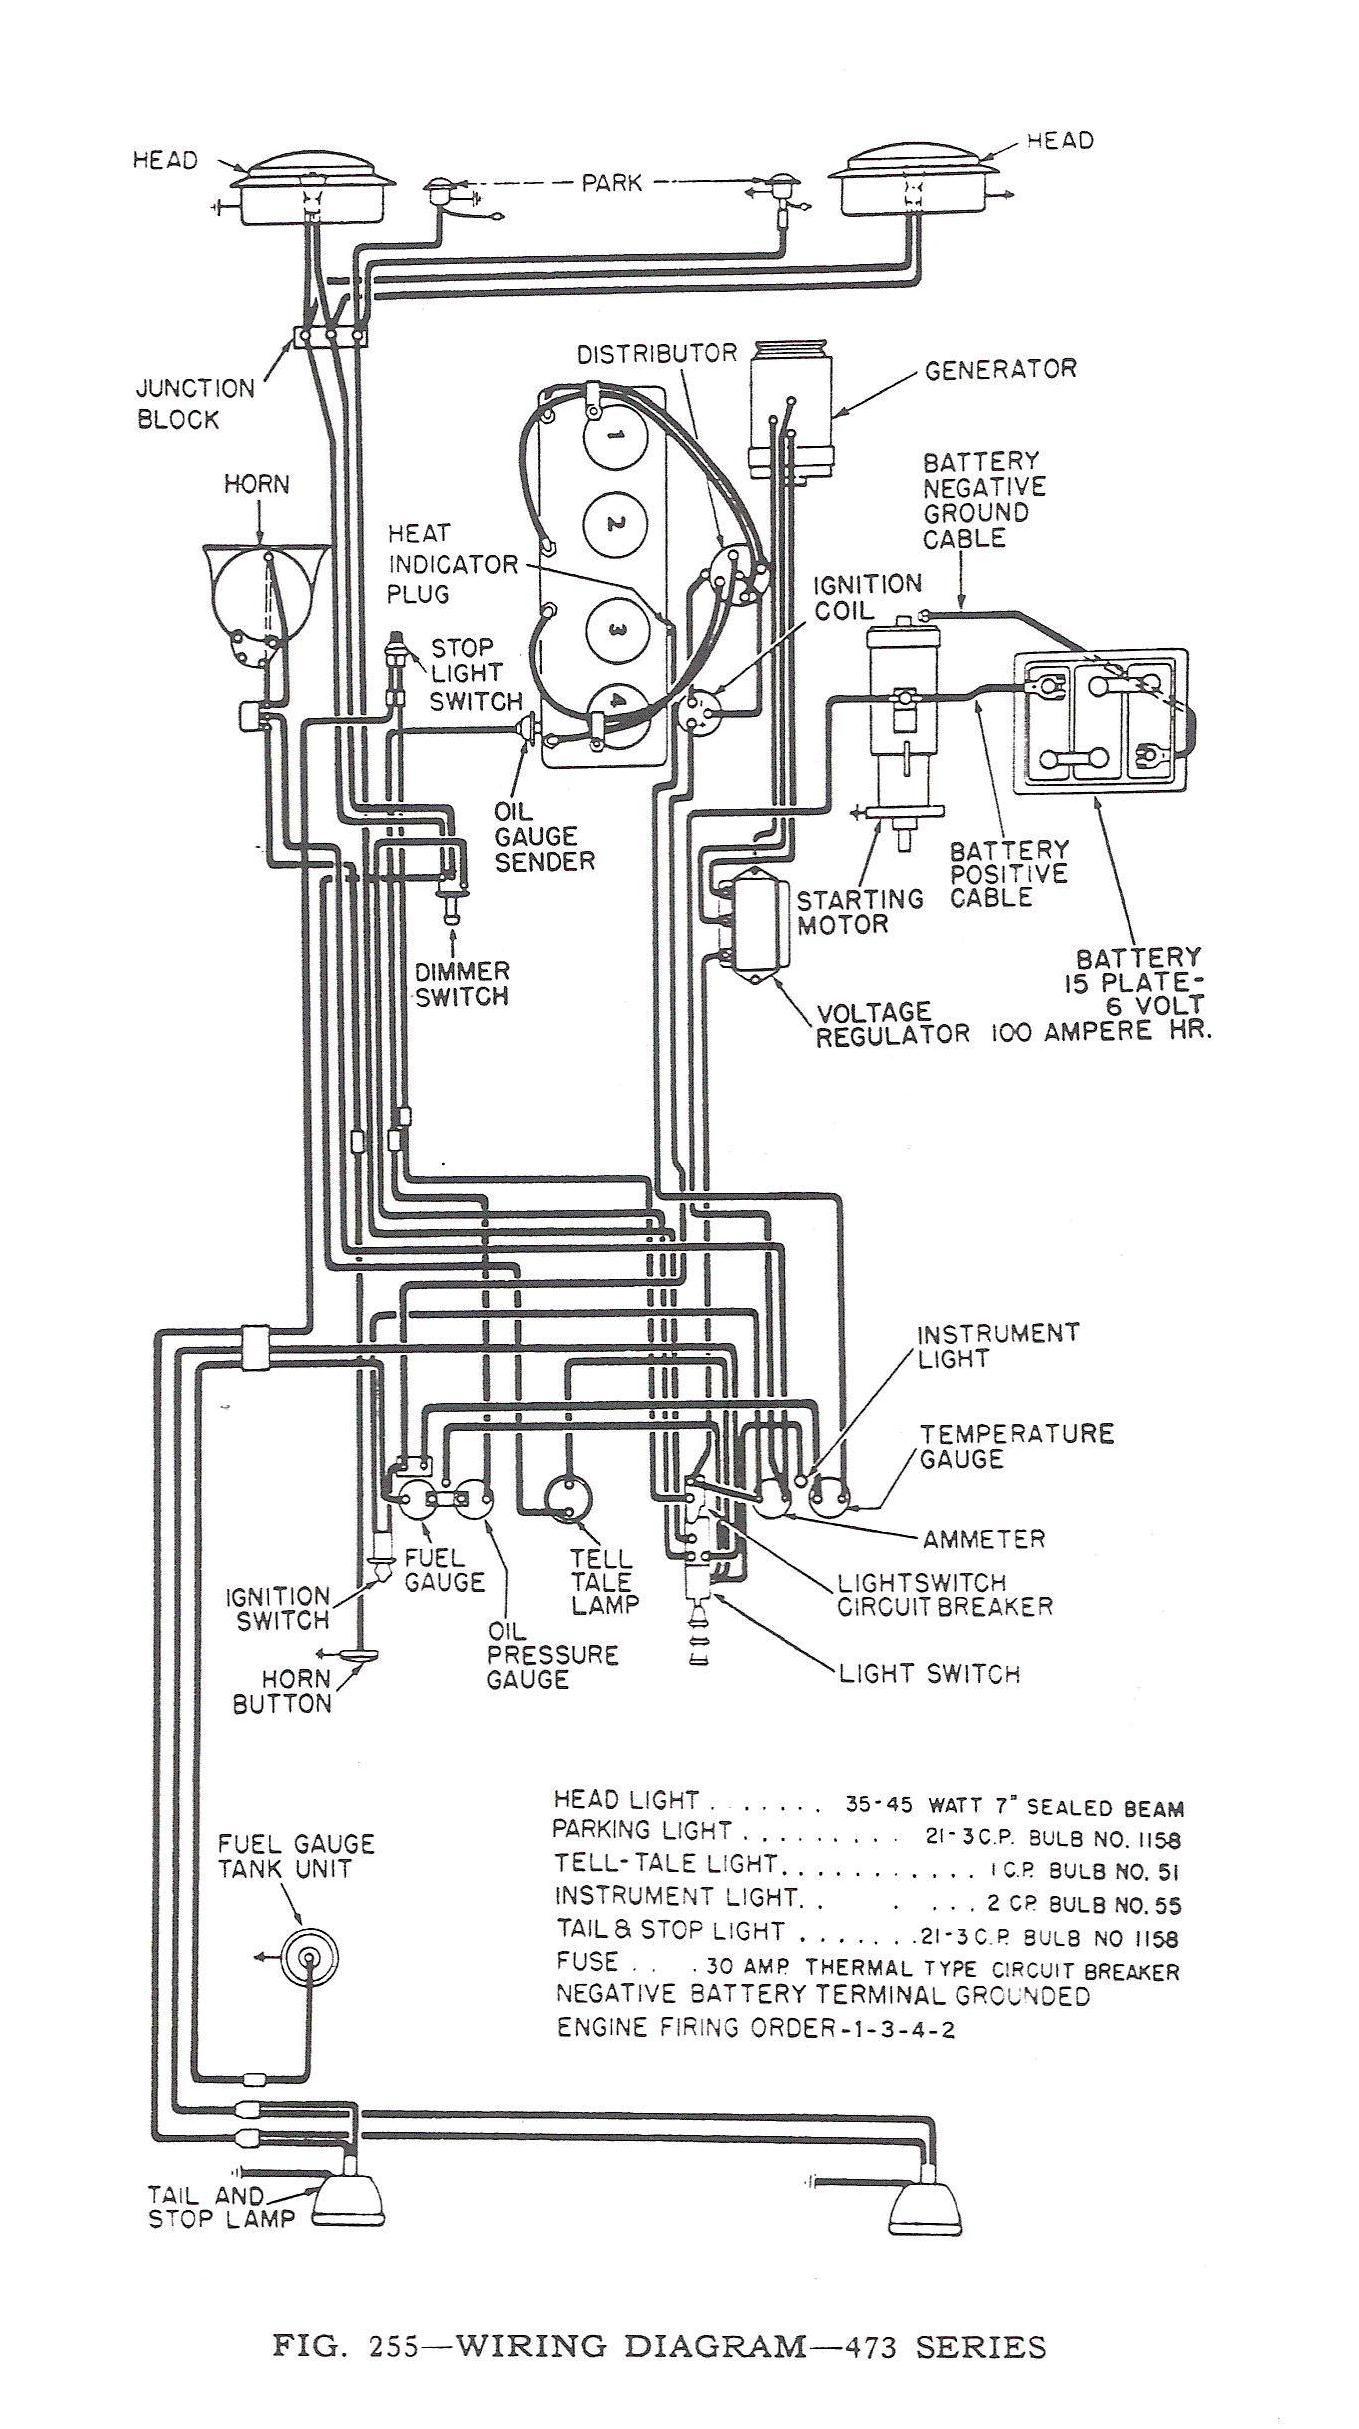 mb jeep wiring diagram 1952 jeep series 473 wiring diagrams - google search ...